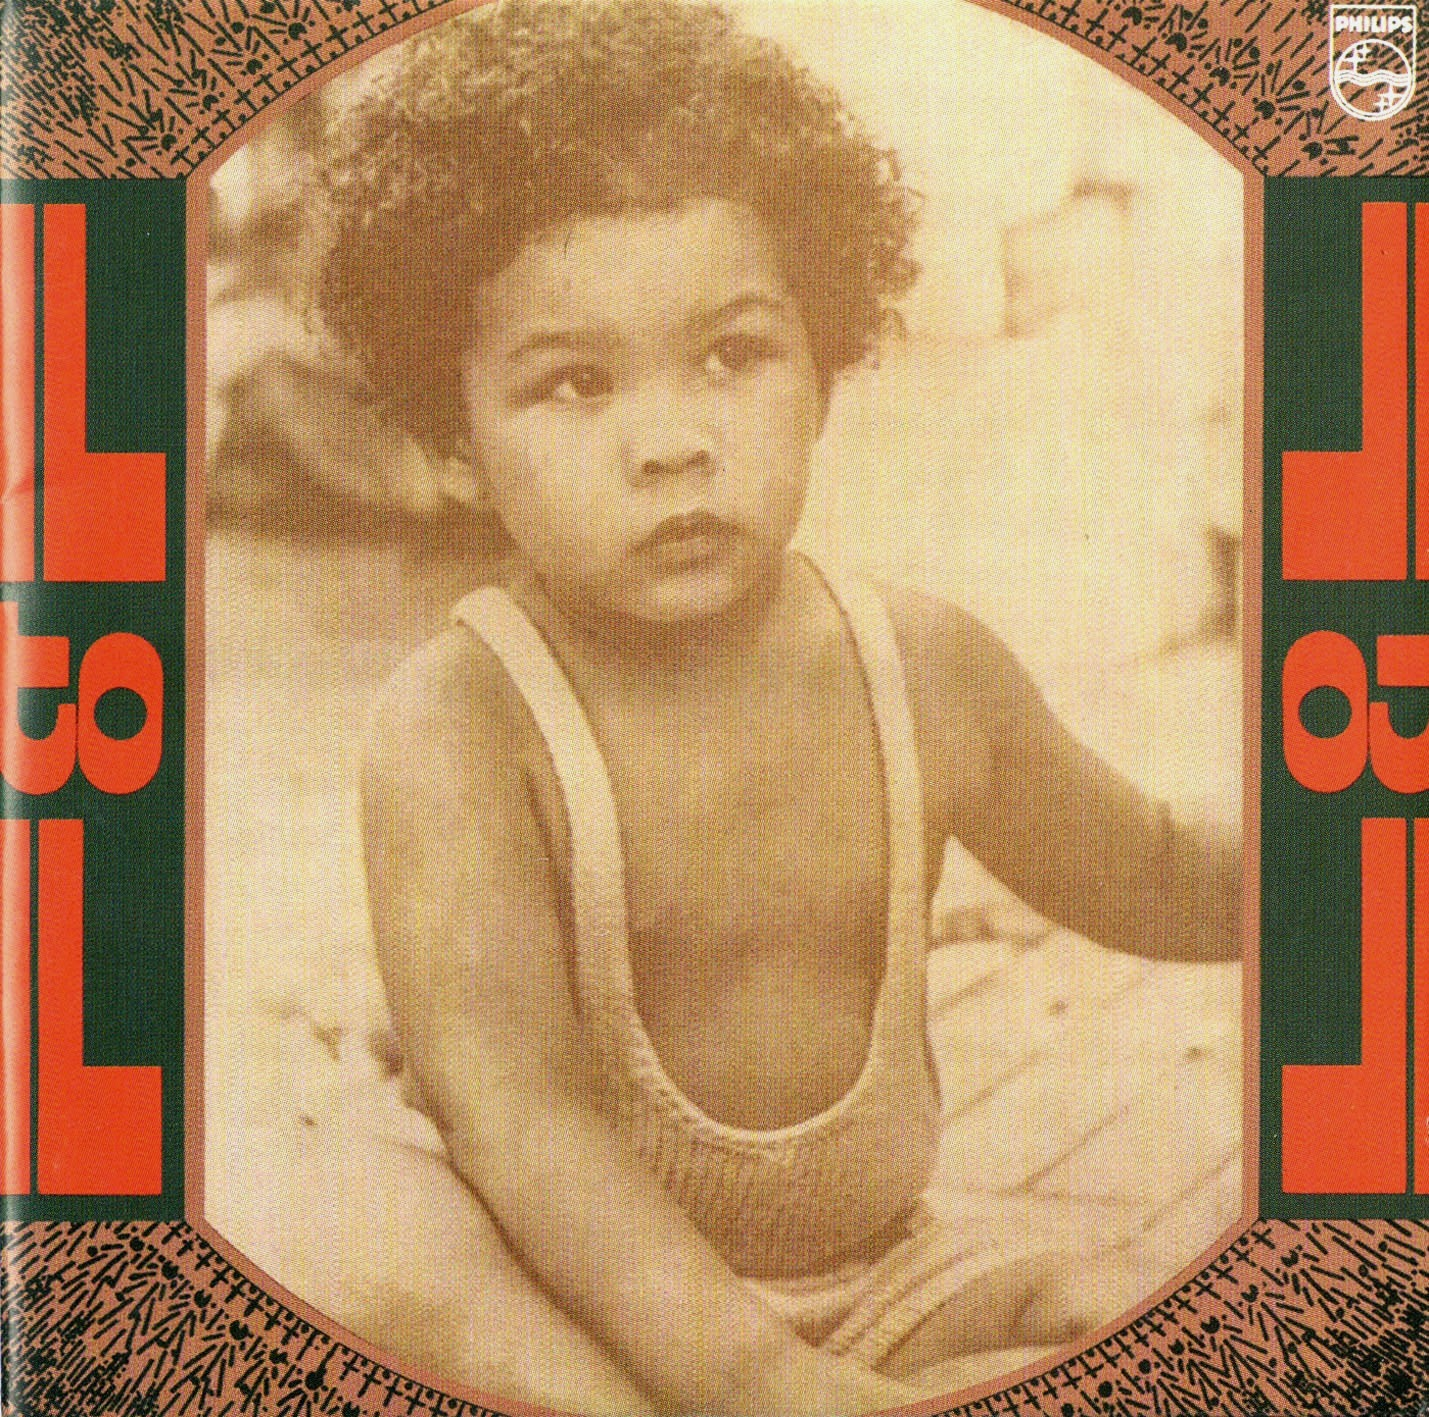 Gilberto Gil - Expresso 2222 - Front (2-2)